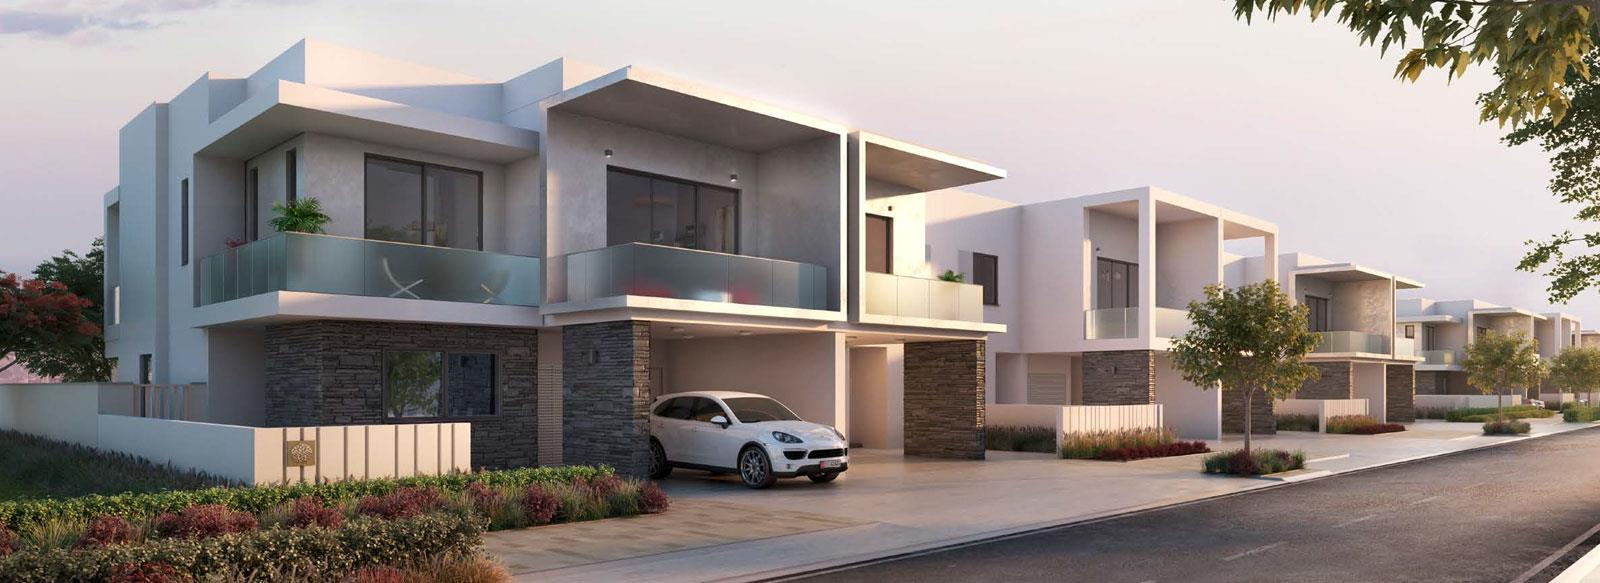 Luxury 3 &amp; 4 Bedroom Townhouses,&nbsp;<div>Easy 20/80 Payment Plan</div>